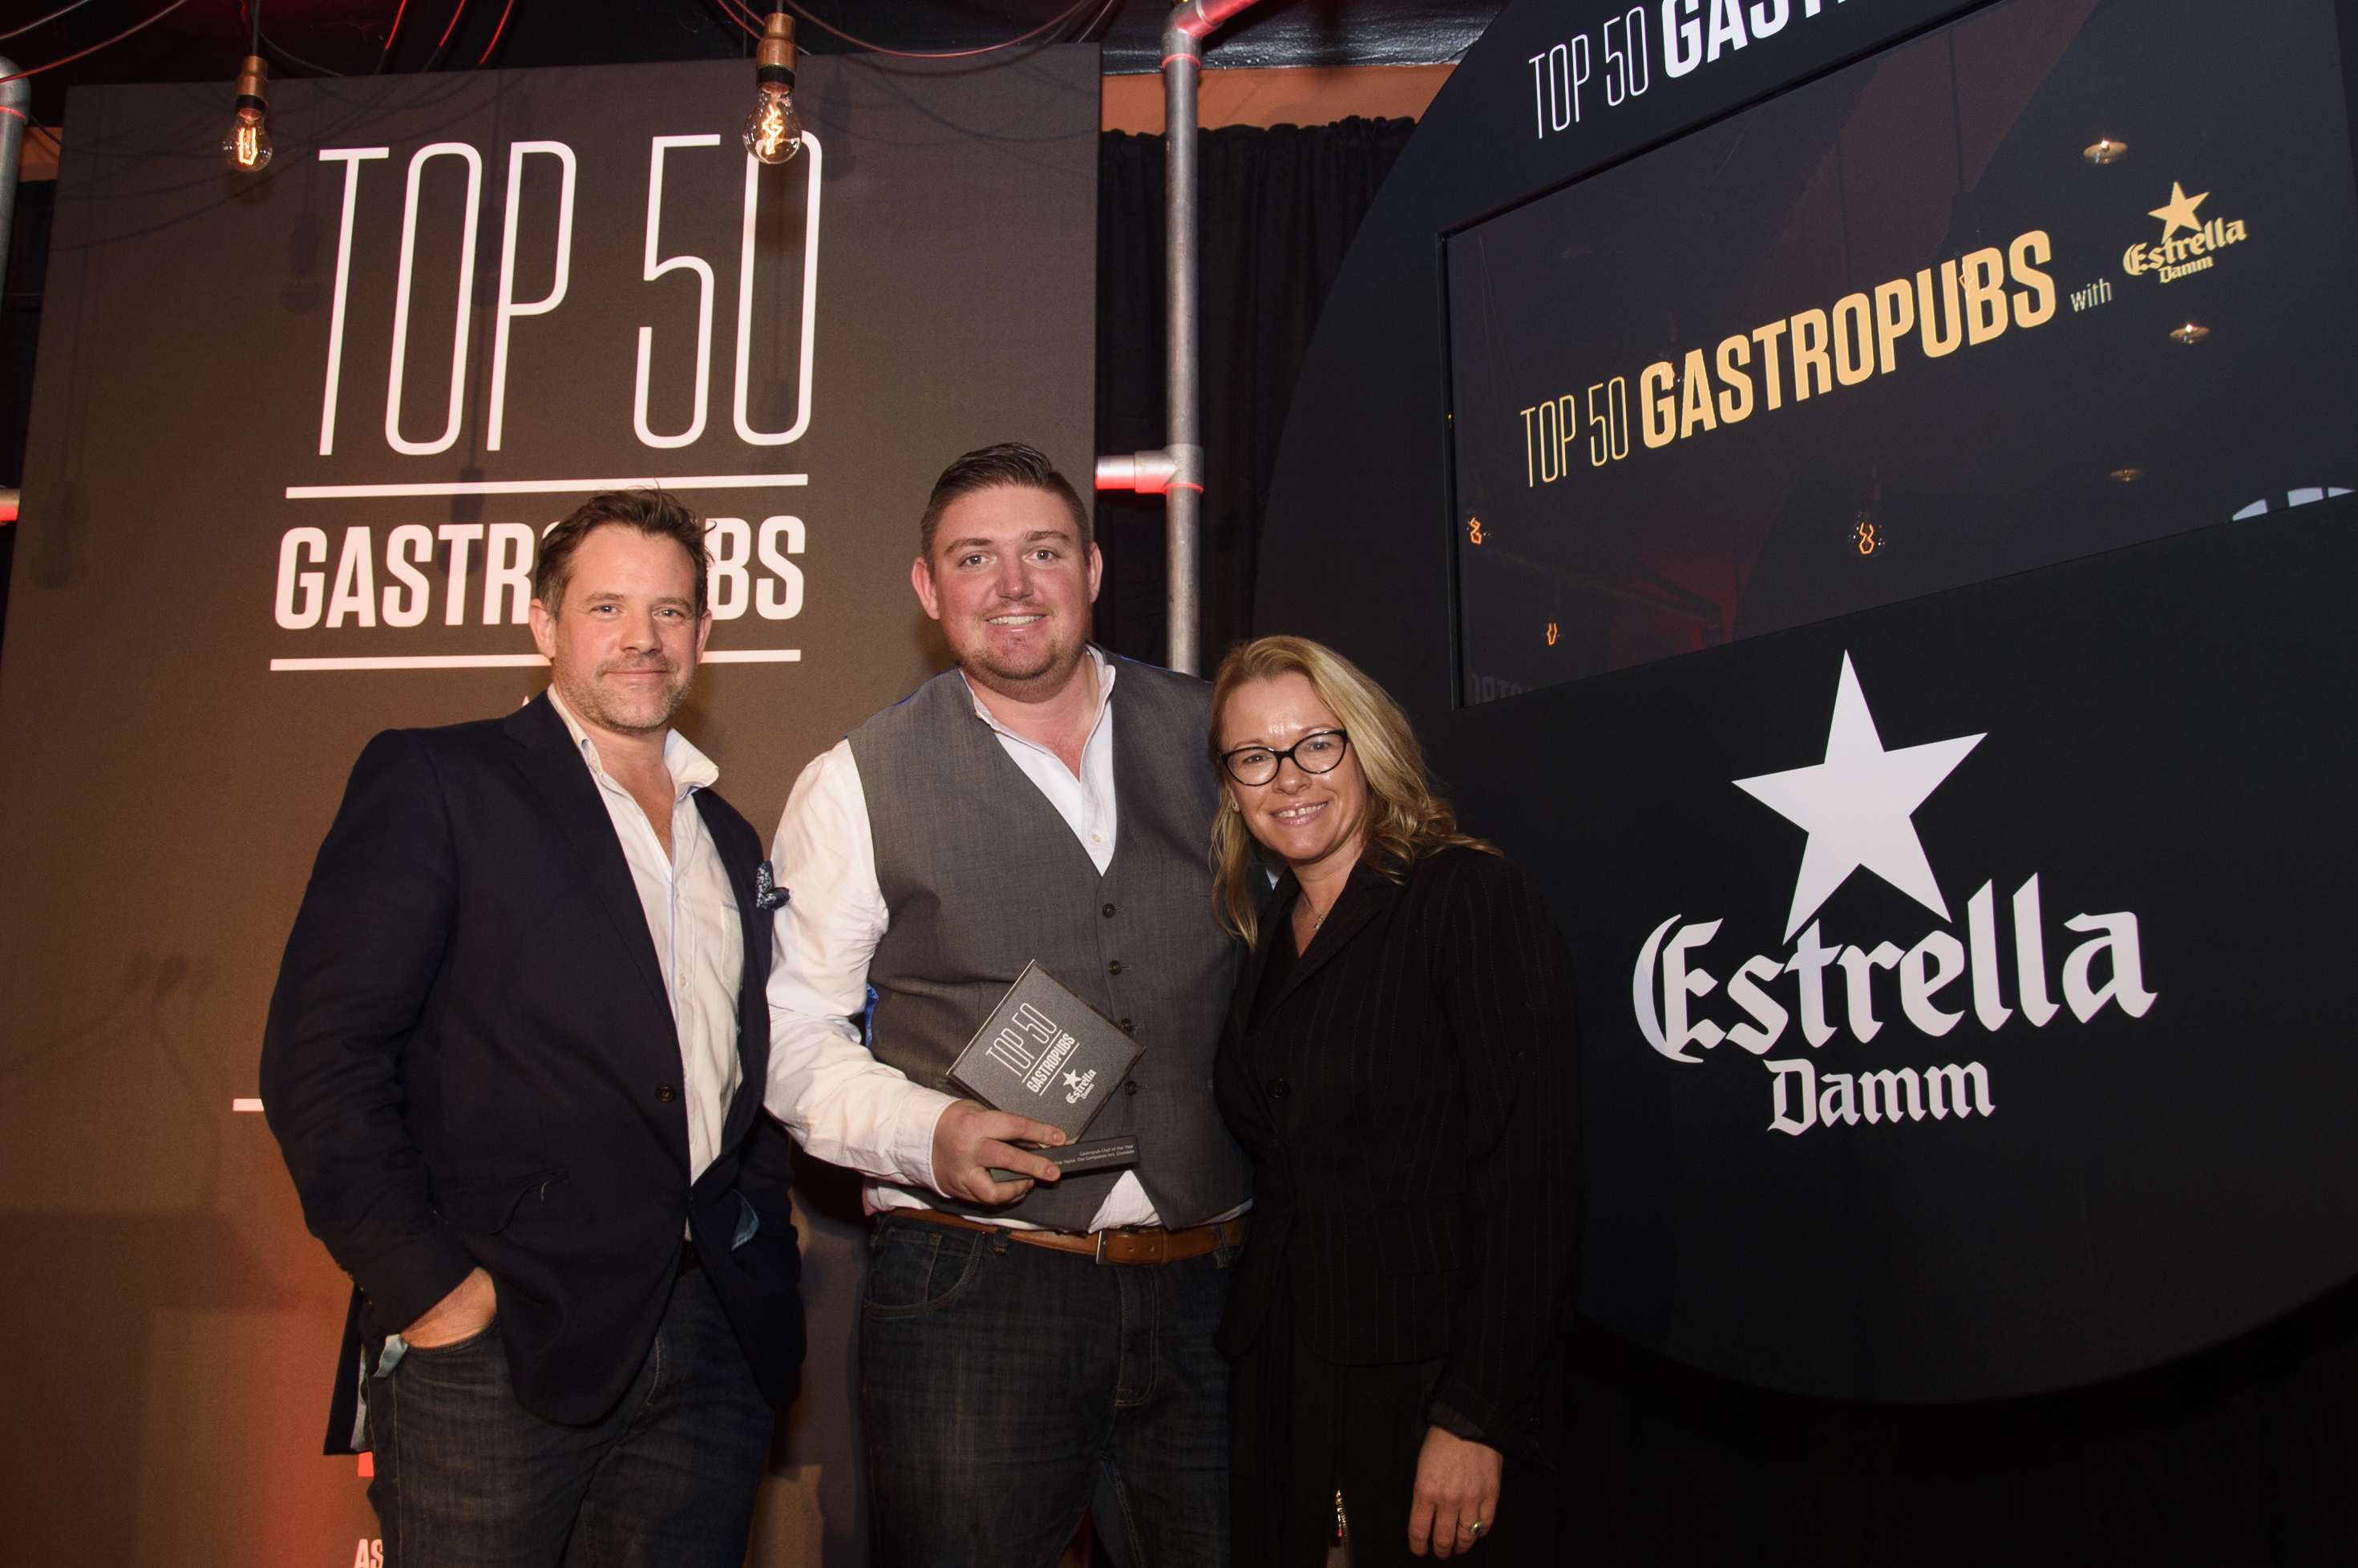 Chef Rob Taylor from The Compasses collects his award at the Estrella Damm Gastro Pub Awards 2017